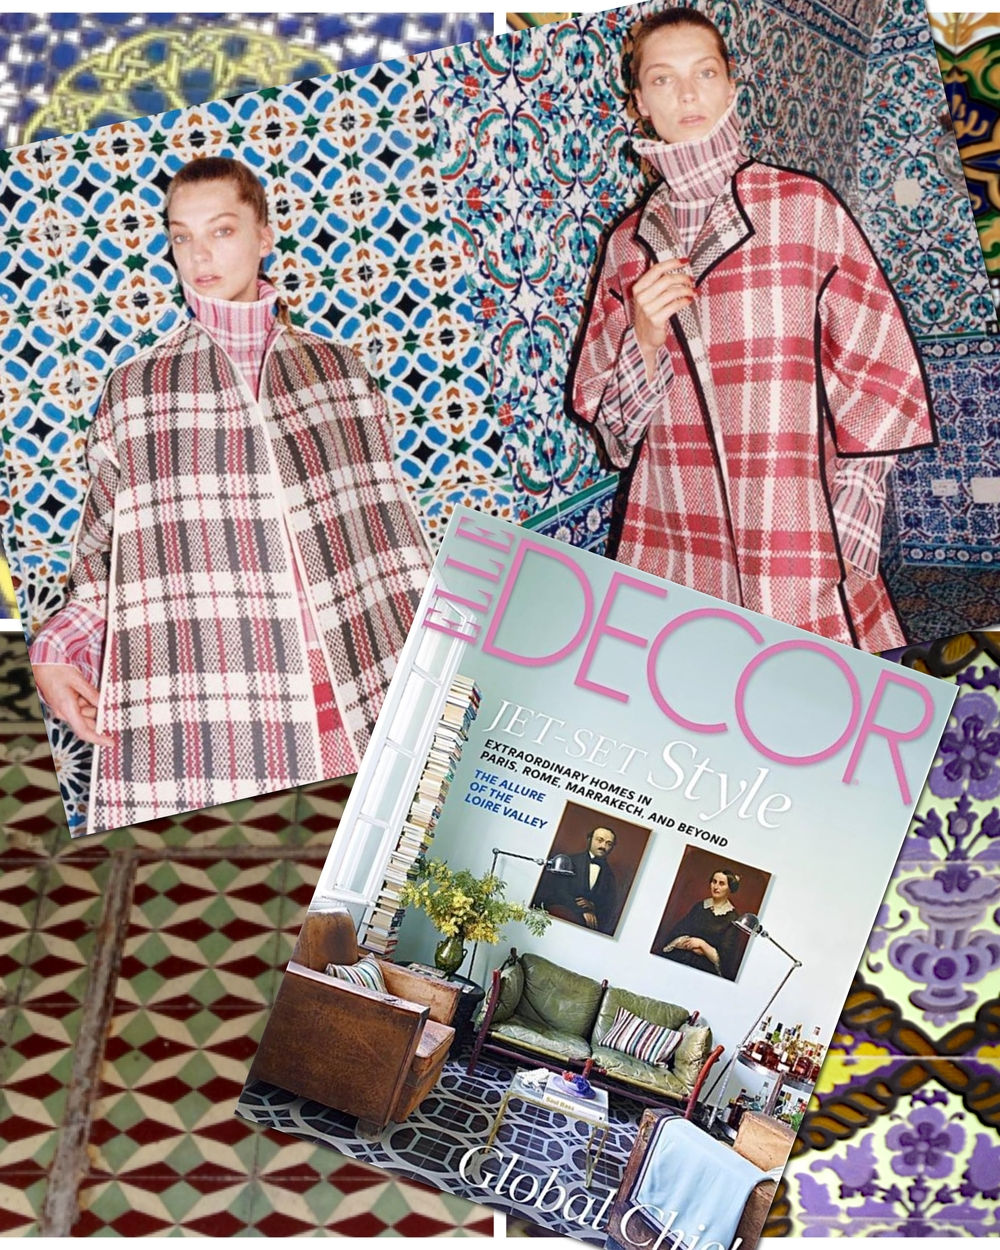 Céline goes with Daria Werbowy photographed by Juergen Teller for the Fall campaign and Elle Décor's September 2013 issue shows the Marrakech living room of Caitlin Dowe-Sandes (who owns a Moroccan tile factory)